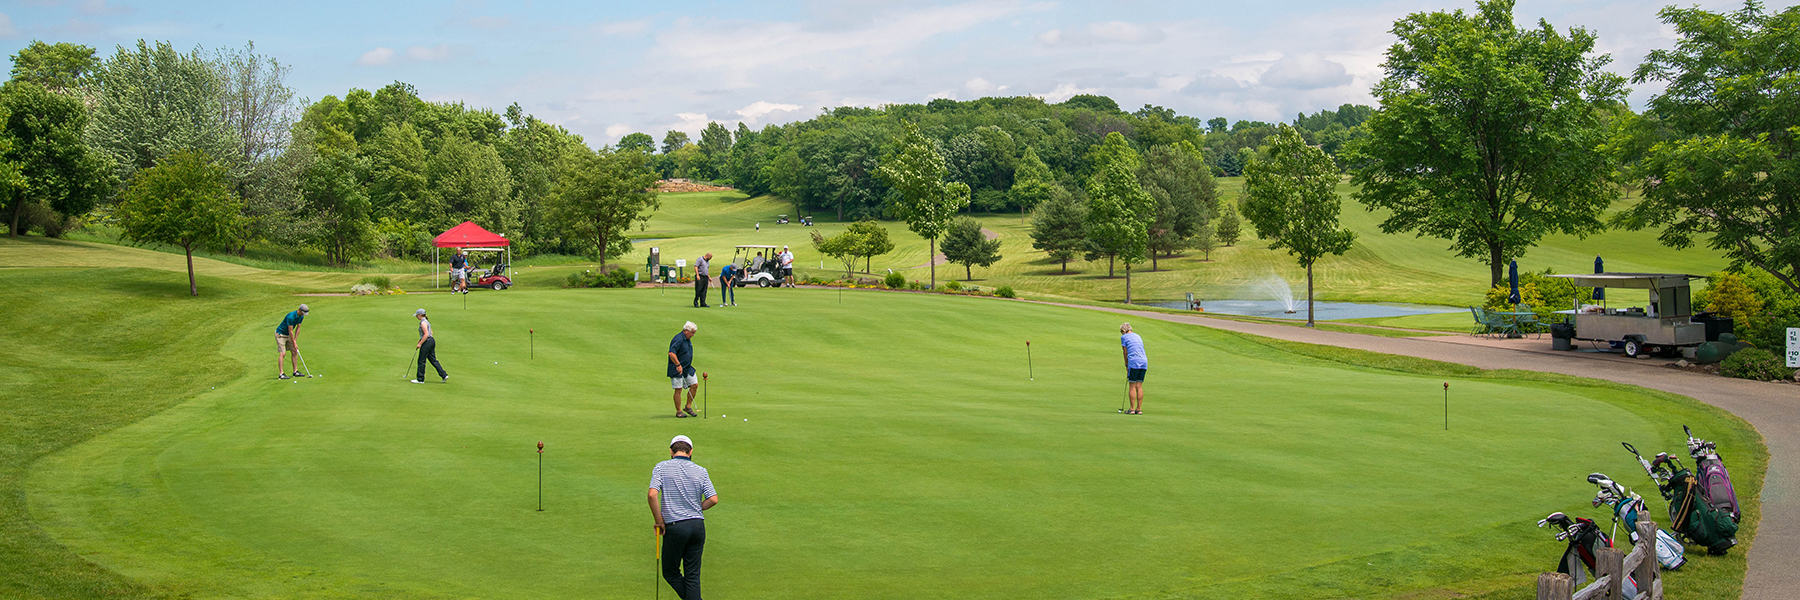 golfers practice putting on a putting green before a tournament